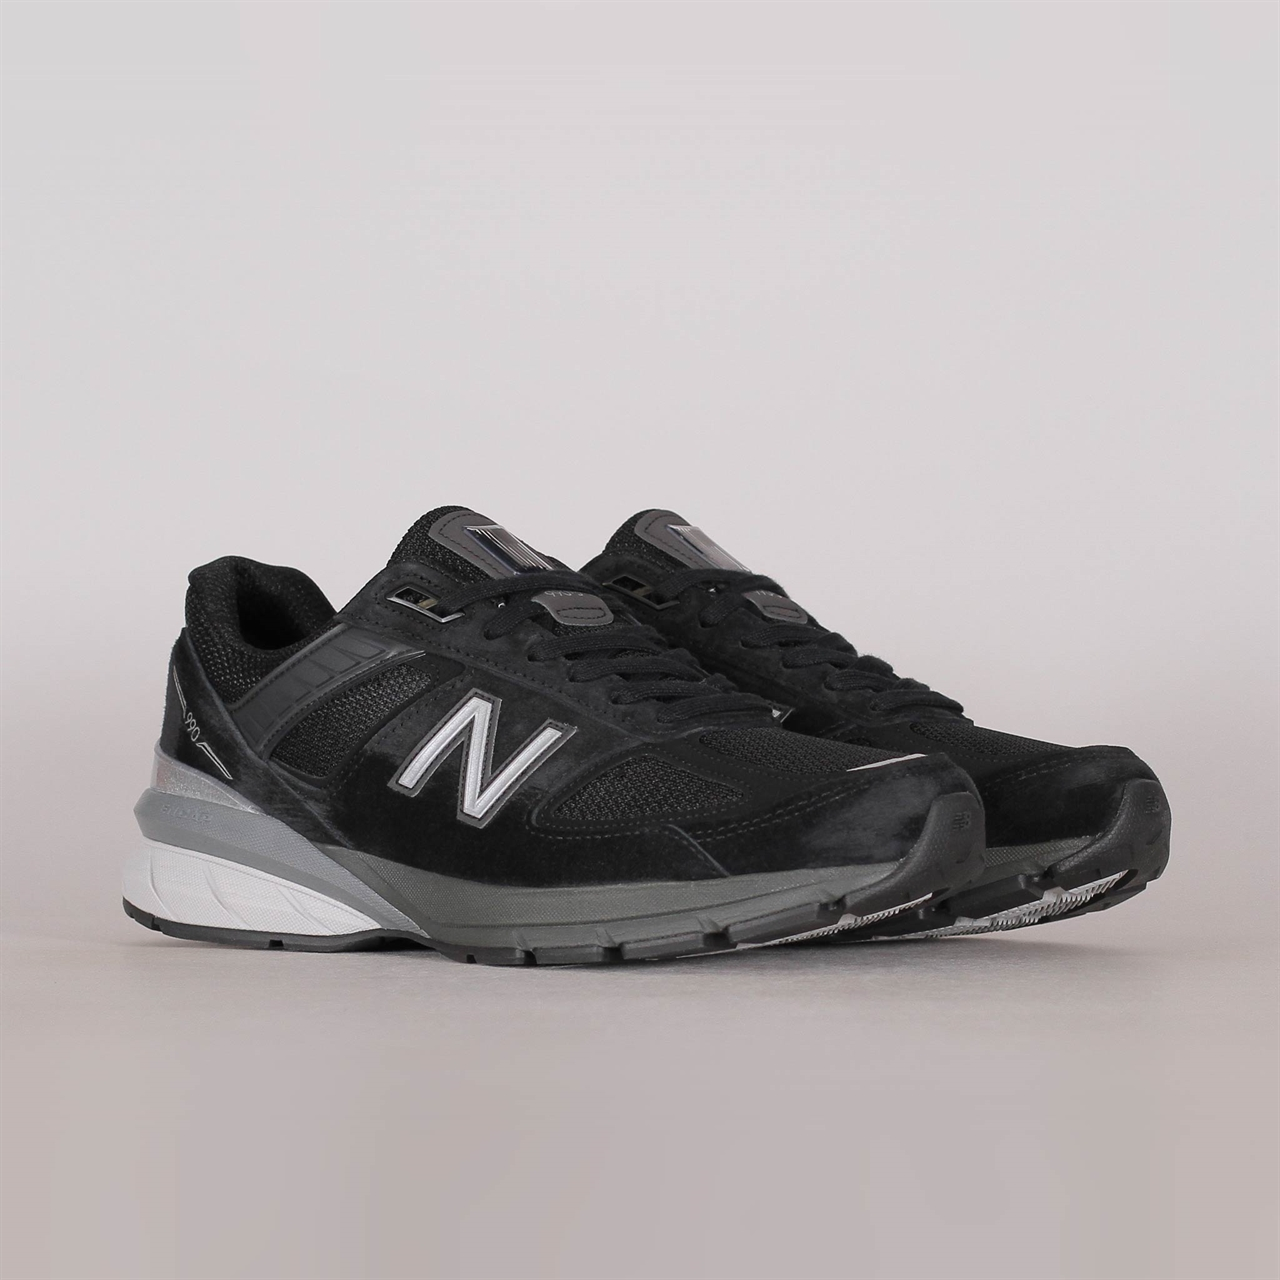 67bf7788e78b6 New Balance 990 V5 Black (M990BK5) - Shelta